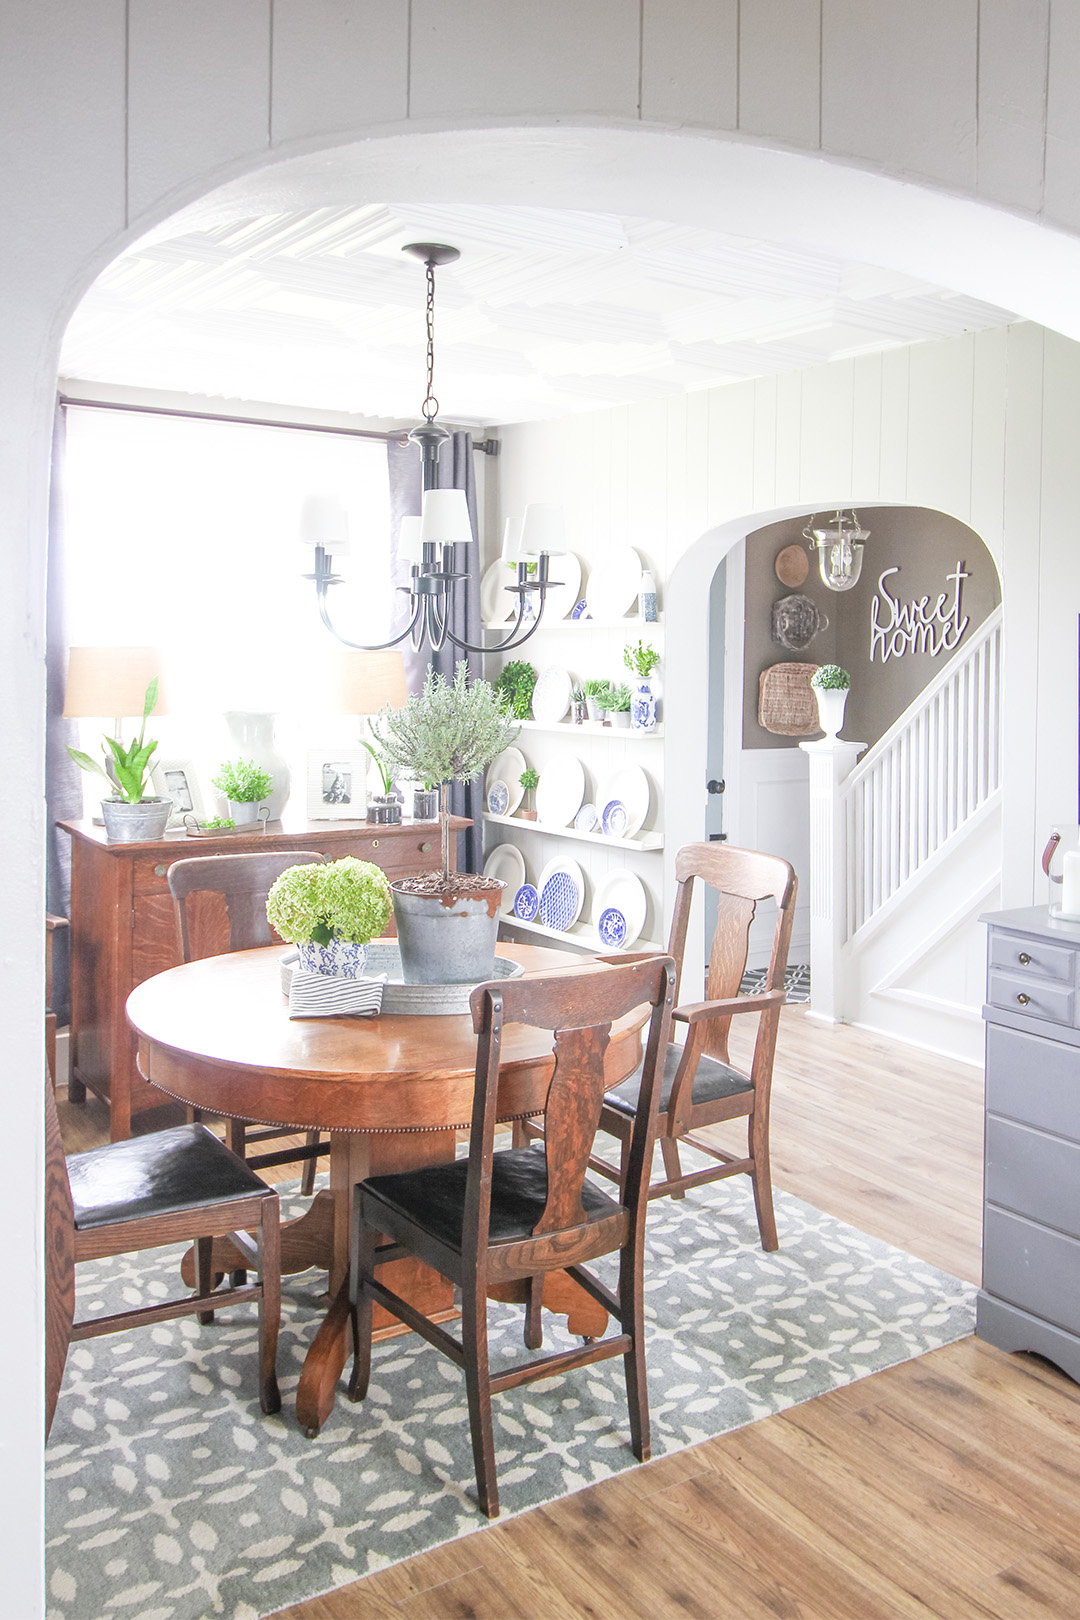 In today's post I'm sharing a few different photos of rooms that I haven't had the chance to show you yet this summer, as well as a look at our latest project!